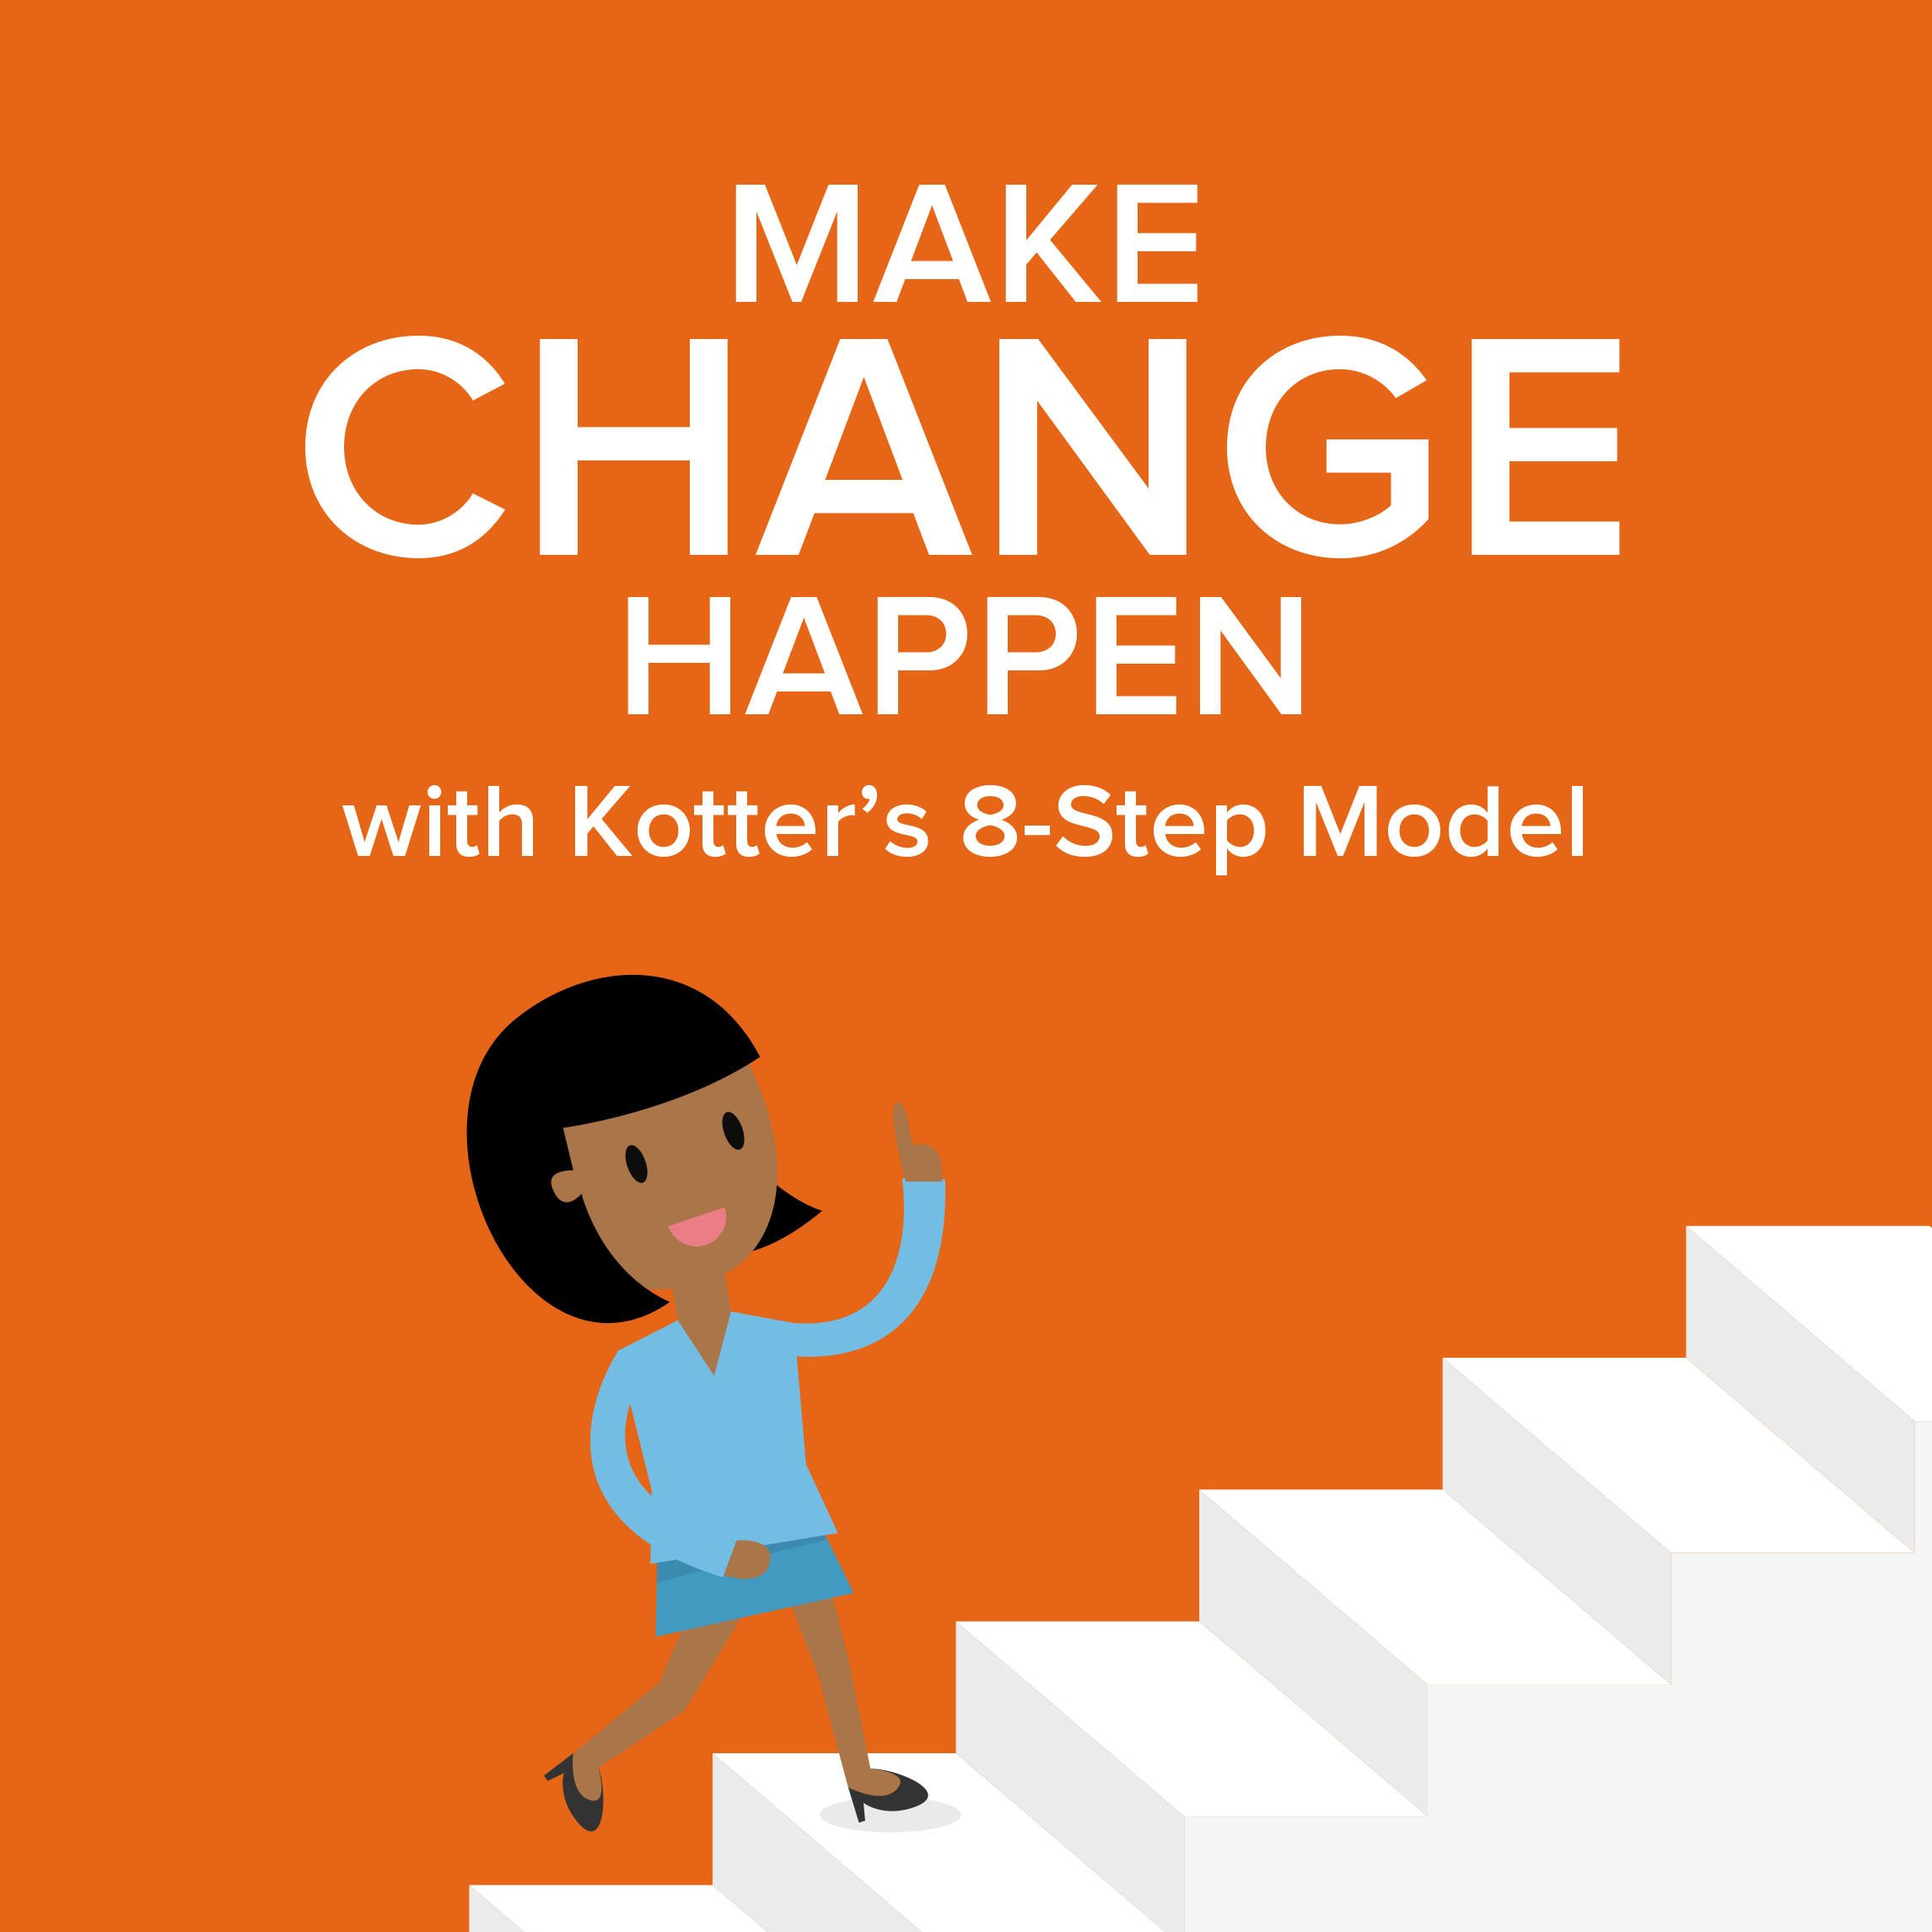 Kotter's 8-Step Change Model - Change Management Tools from